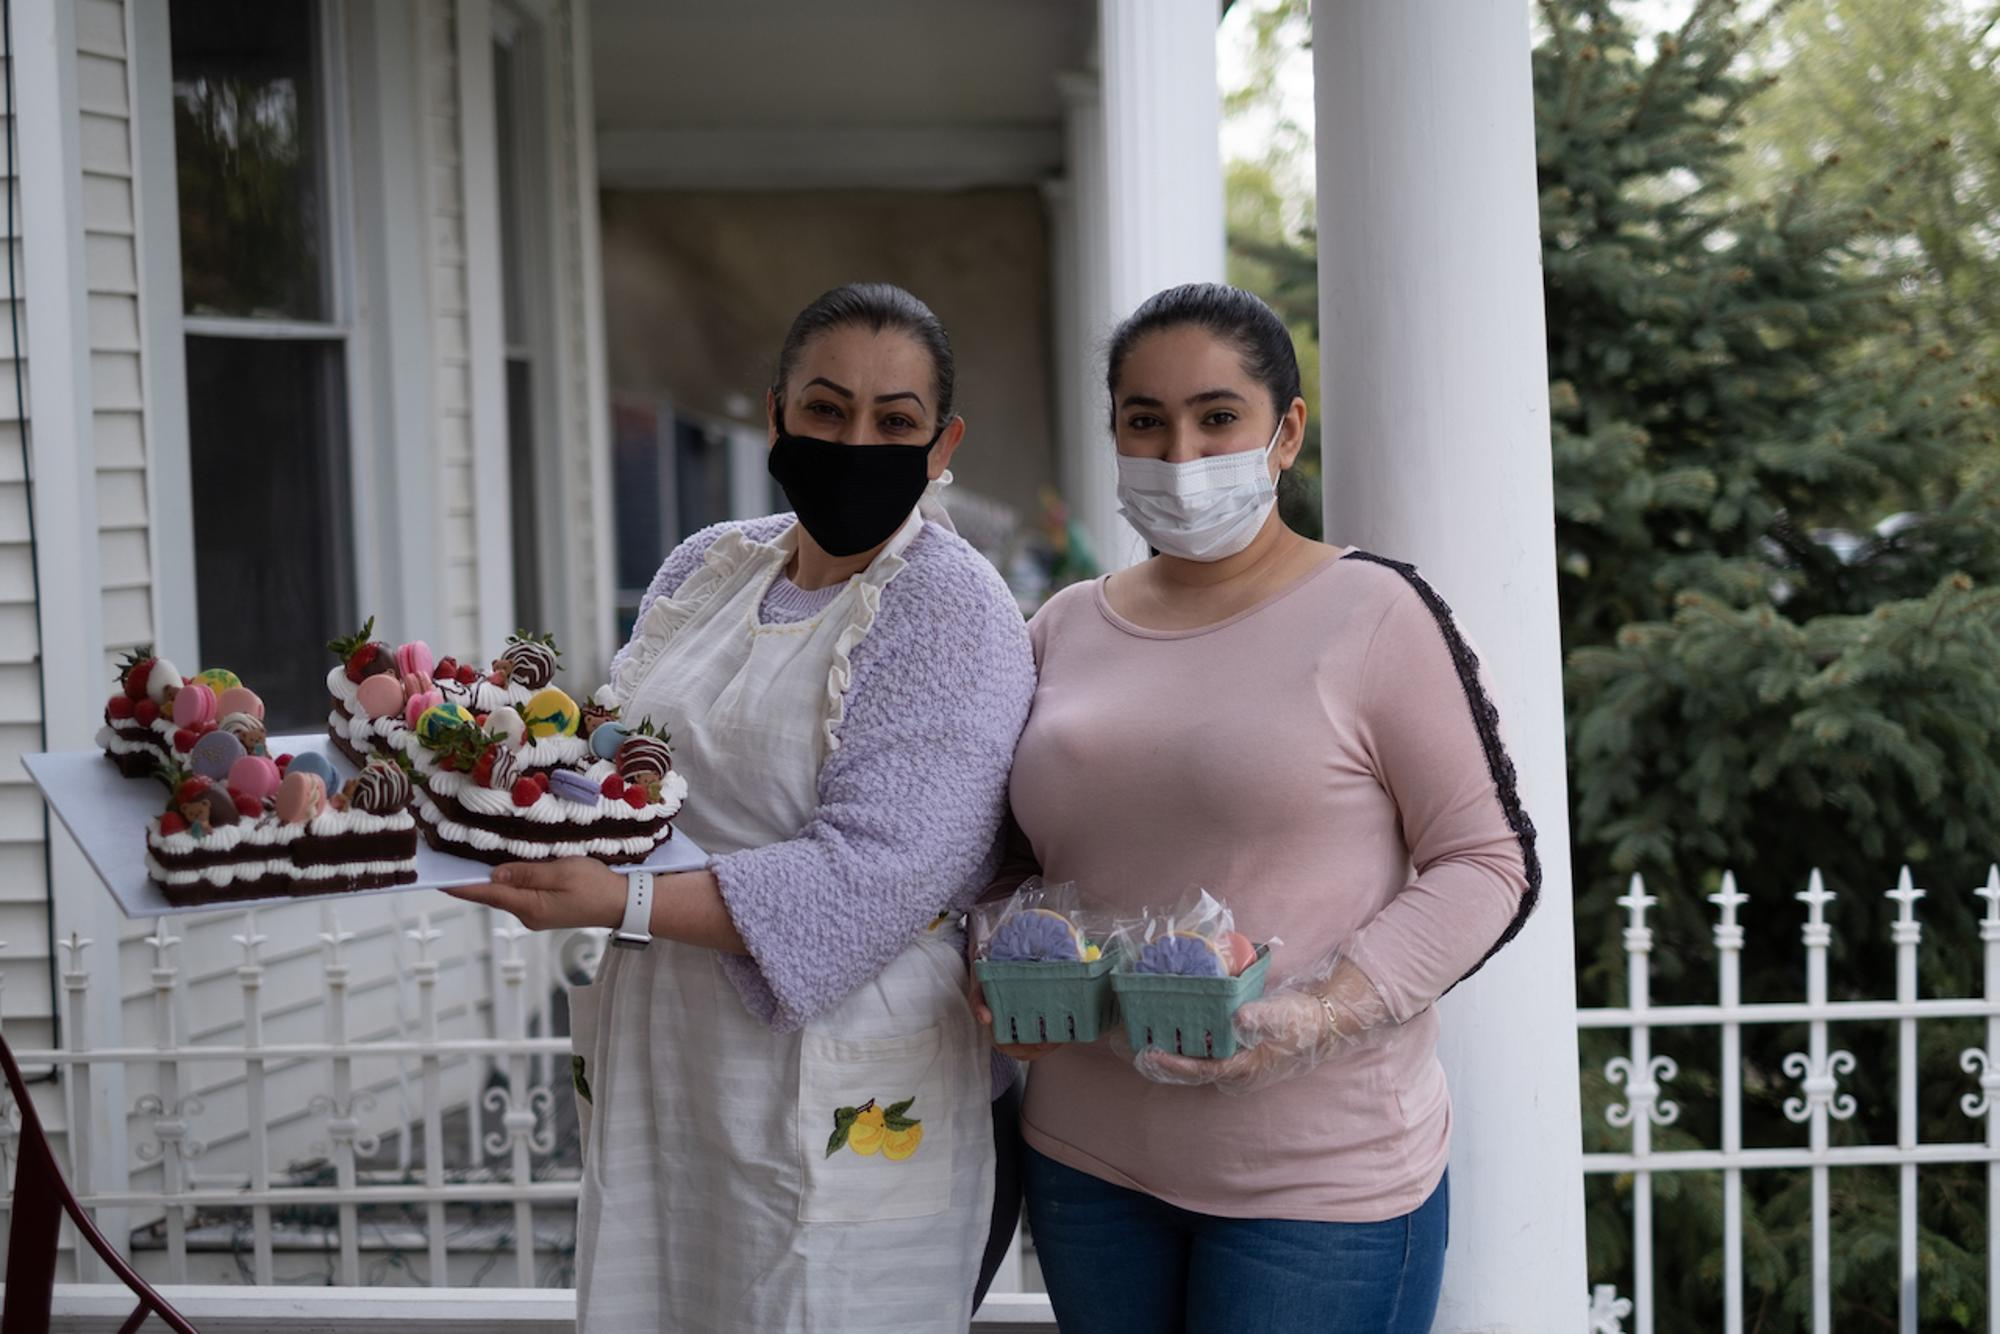 Faviola Lopez and her daughter, Gabriela, prepare and sell gift baskets for Mother's Day from home in Southwest Detroit.Taken by Erik Paul Howard for WDET